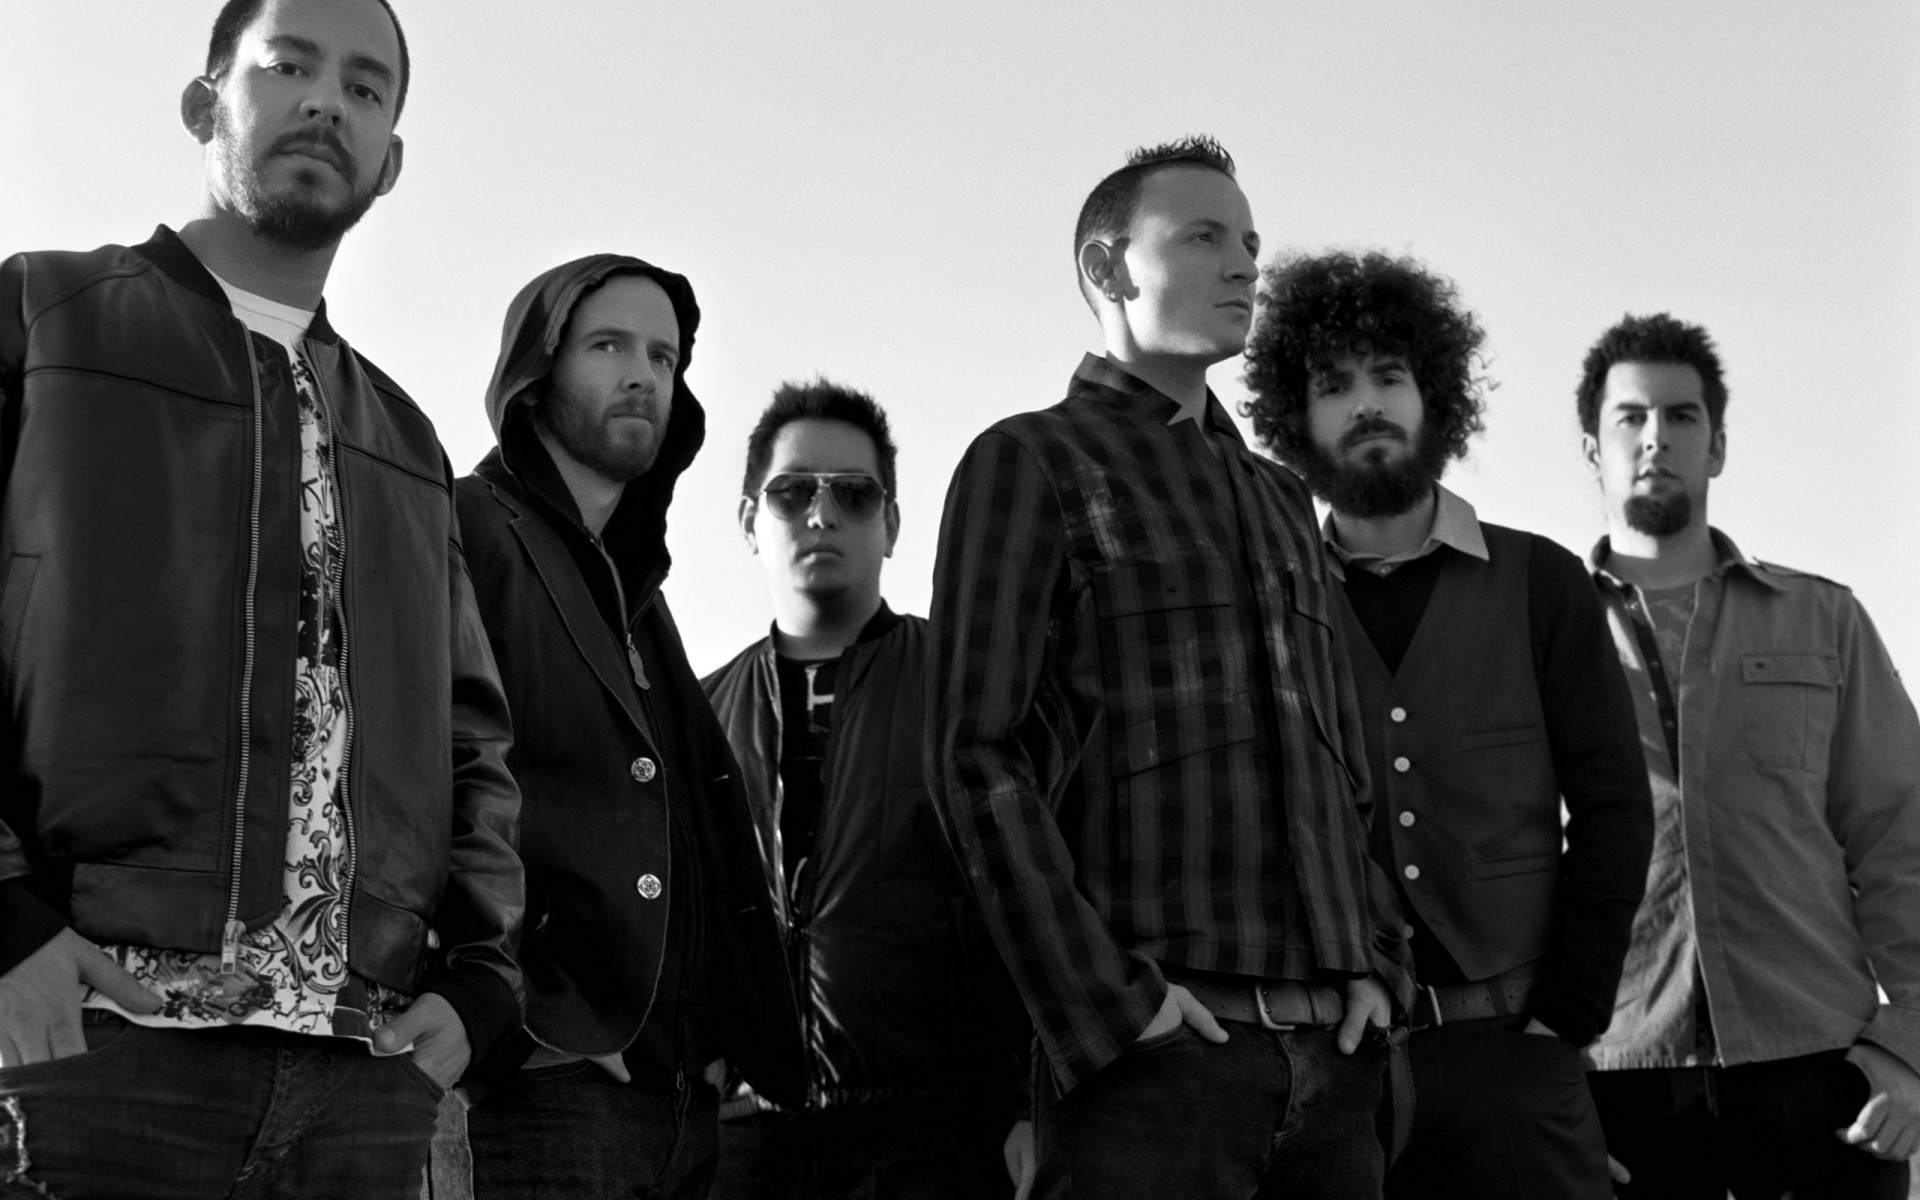 lp, mike, band, linkin park